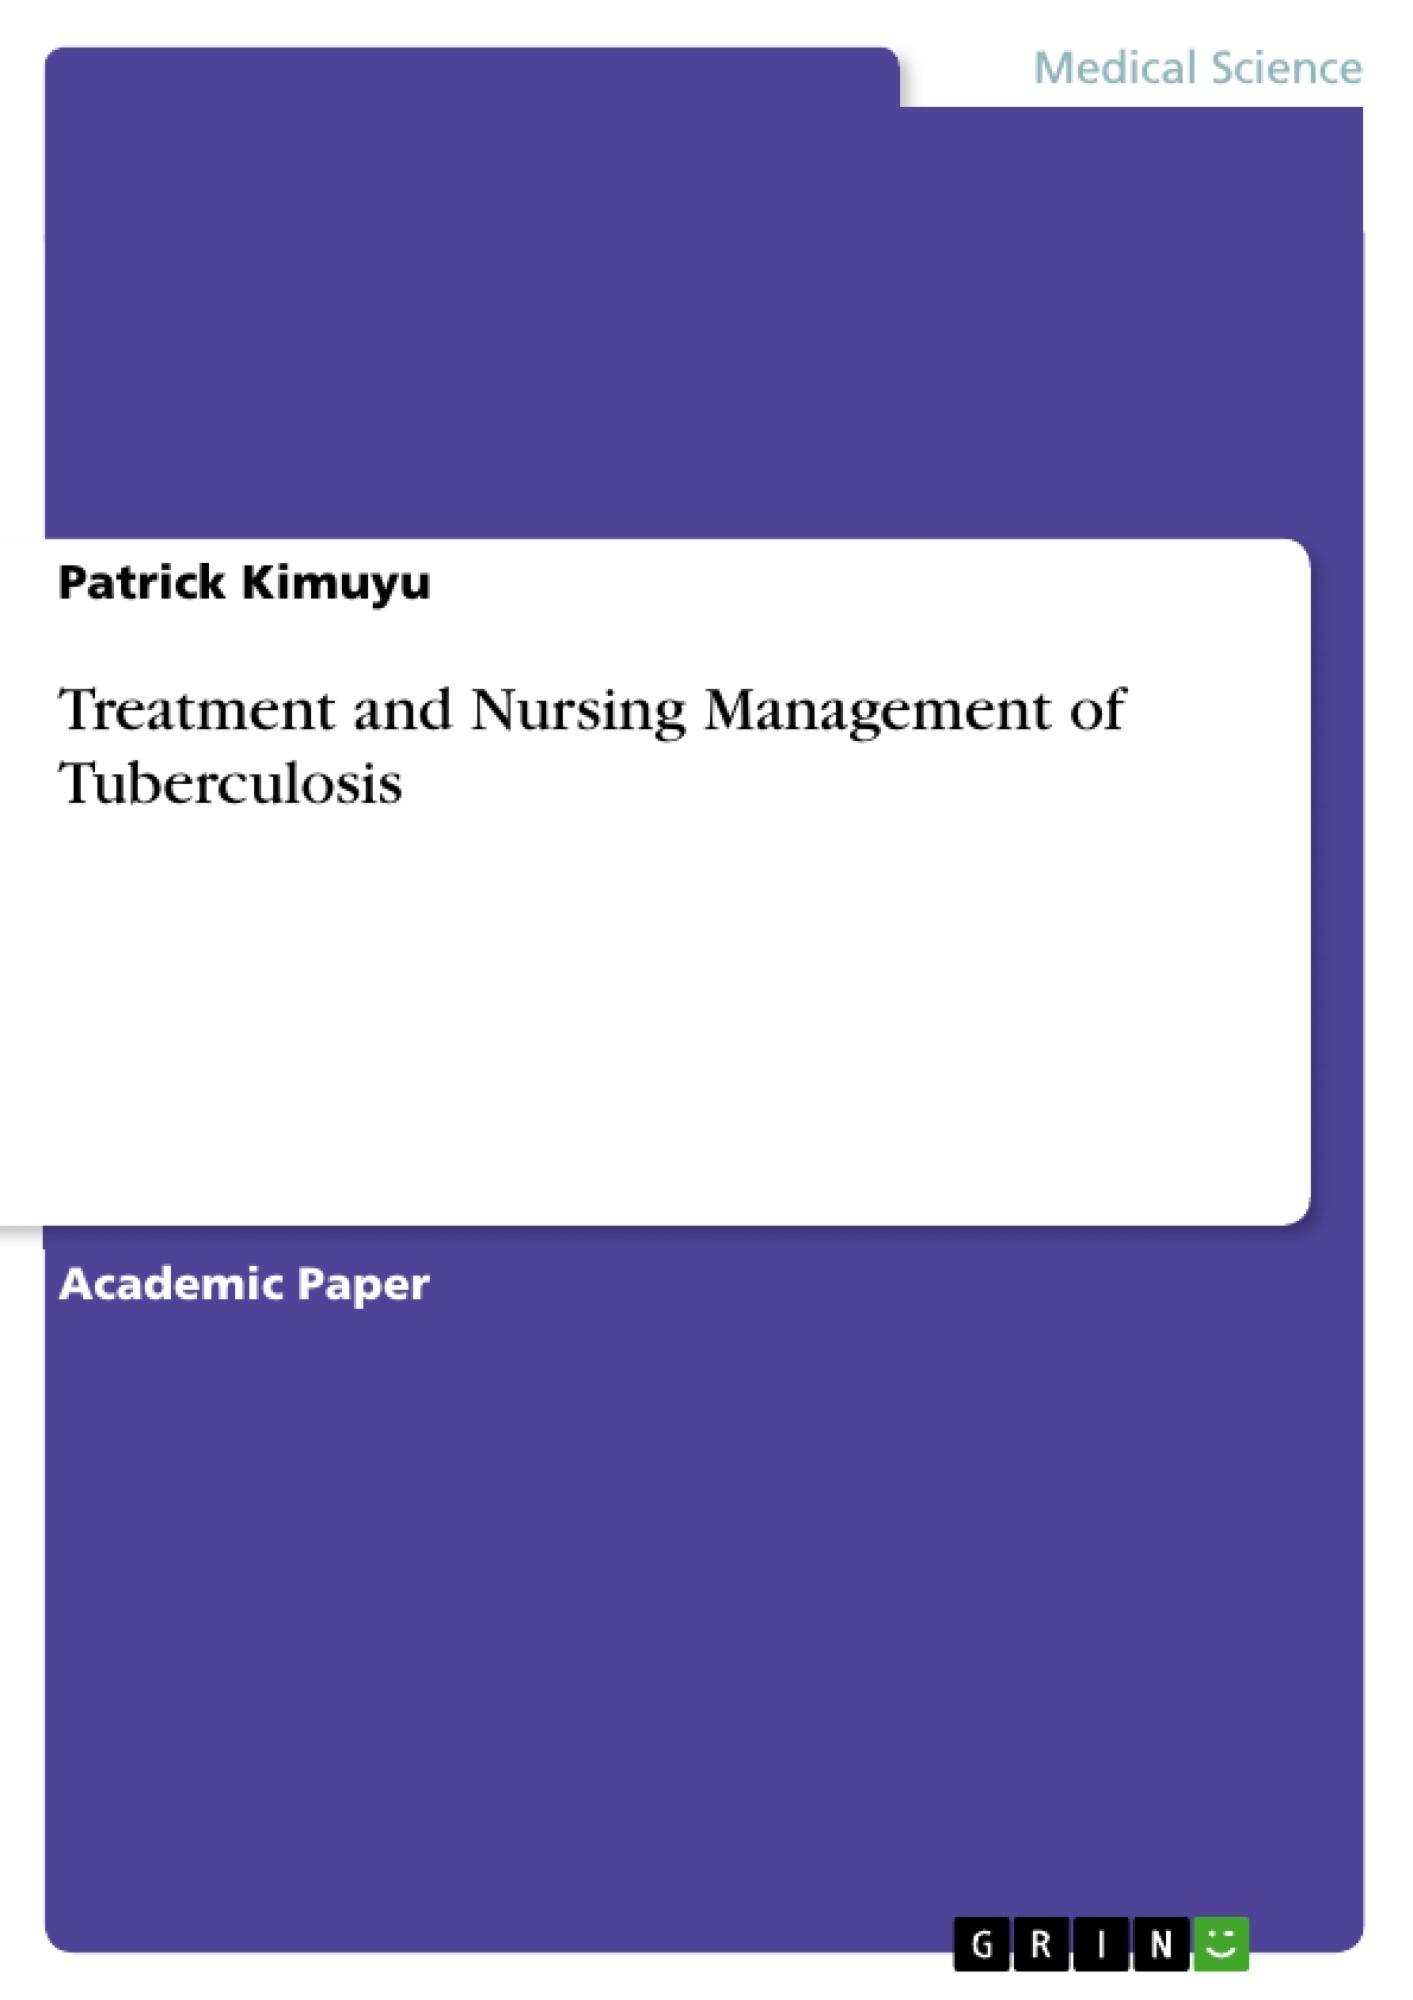 Title: Treatment and Nursing Management of Tuberculosis